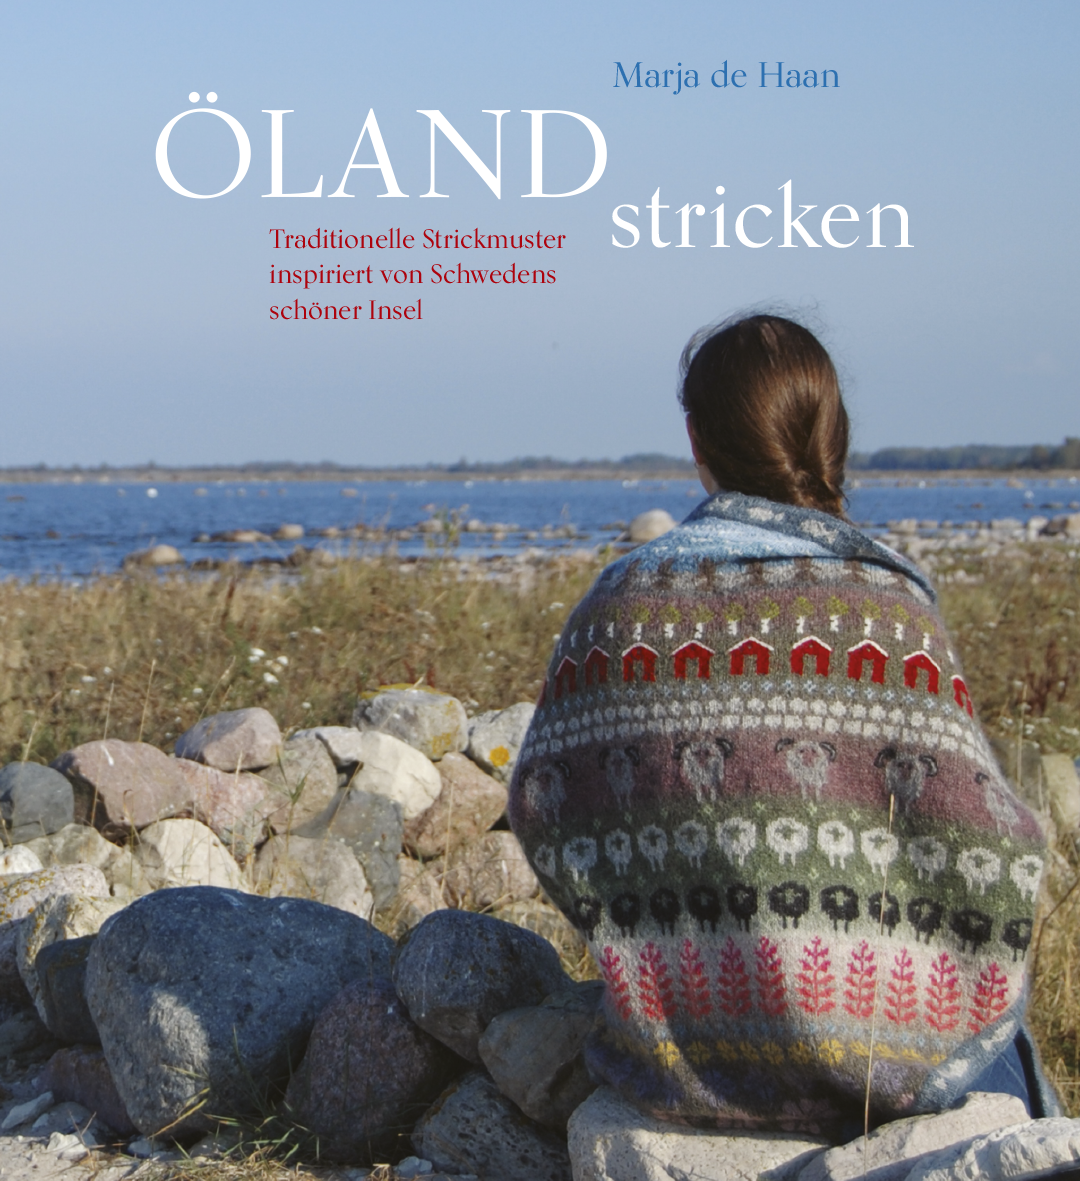 Ullcentrum de Haan Öland stricken